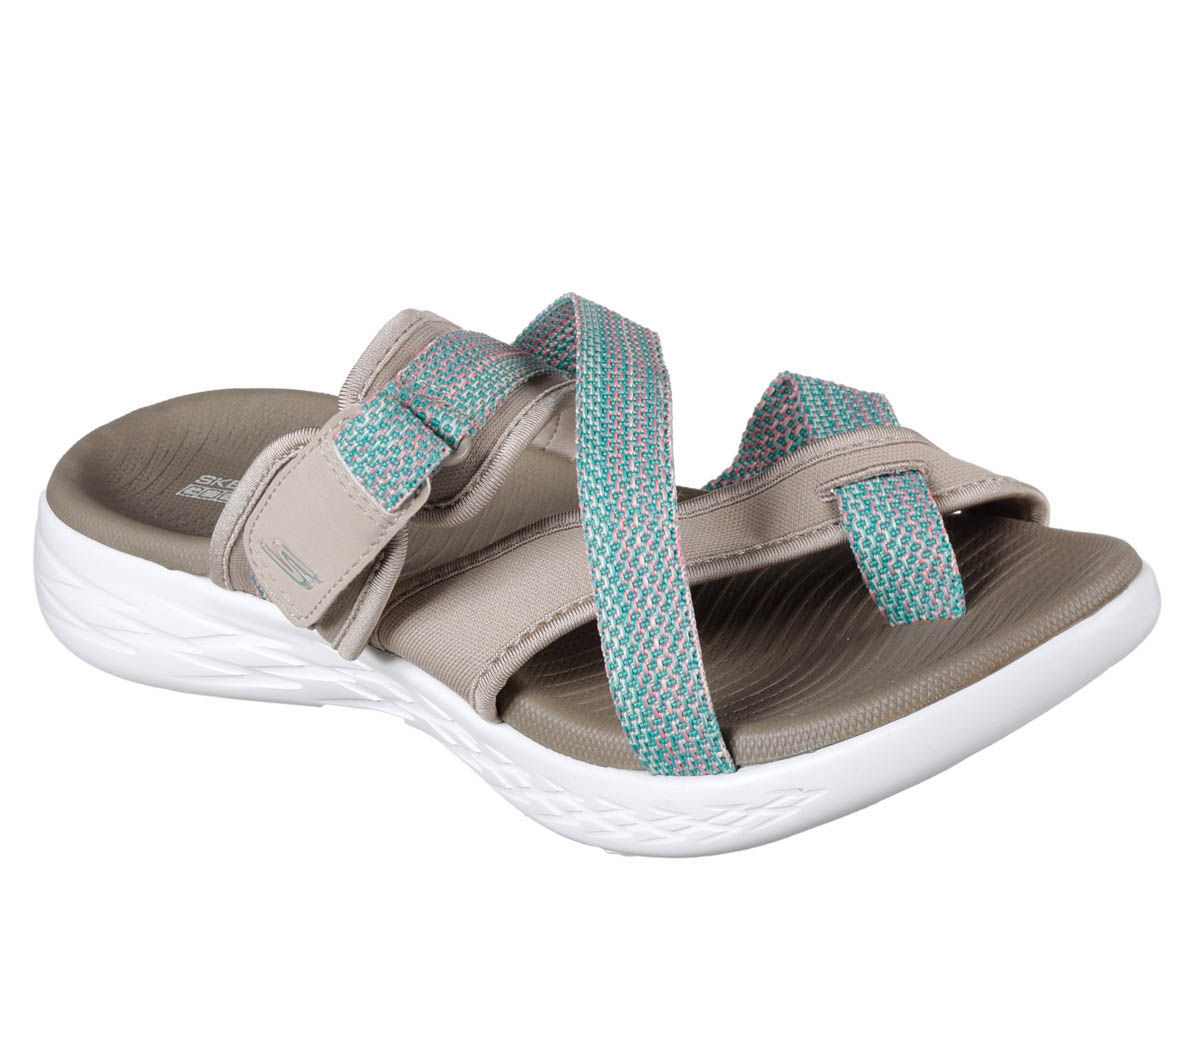 590c168d6fe Skechers On The Go Glow 15308 TPE Taupe Slide Sandals